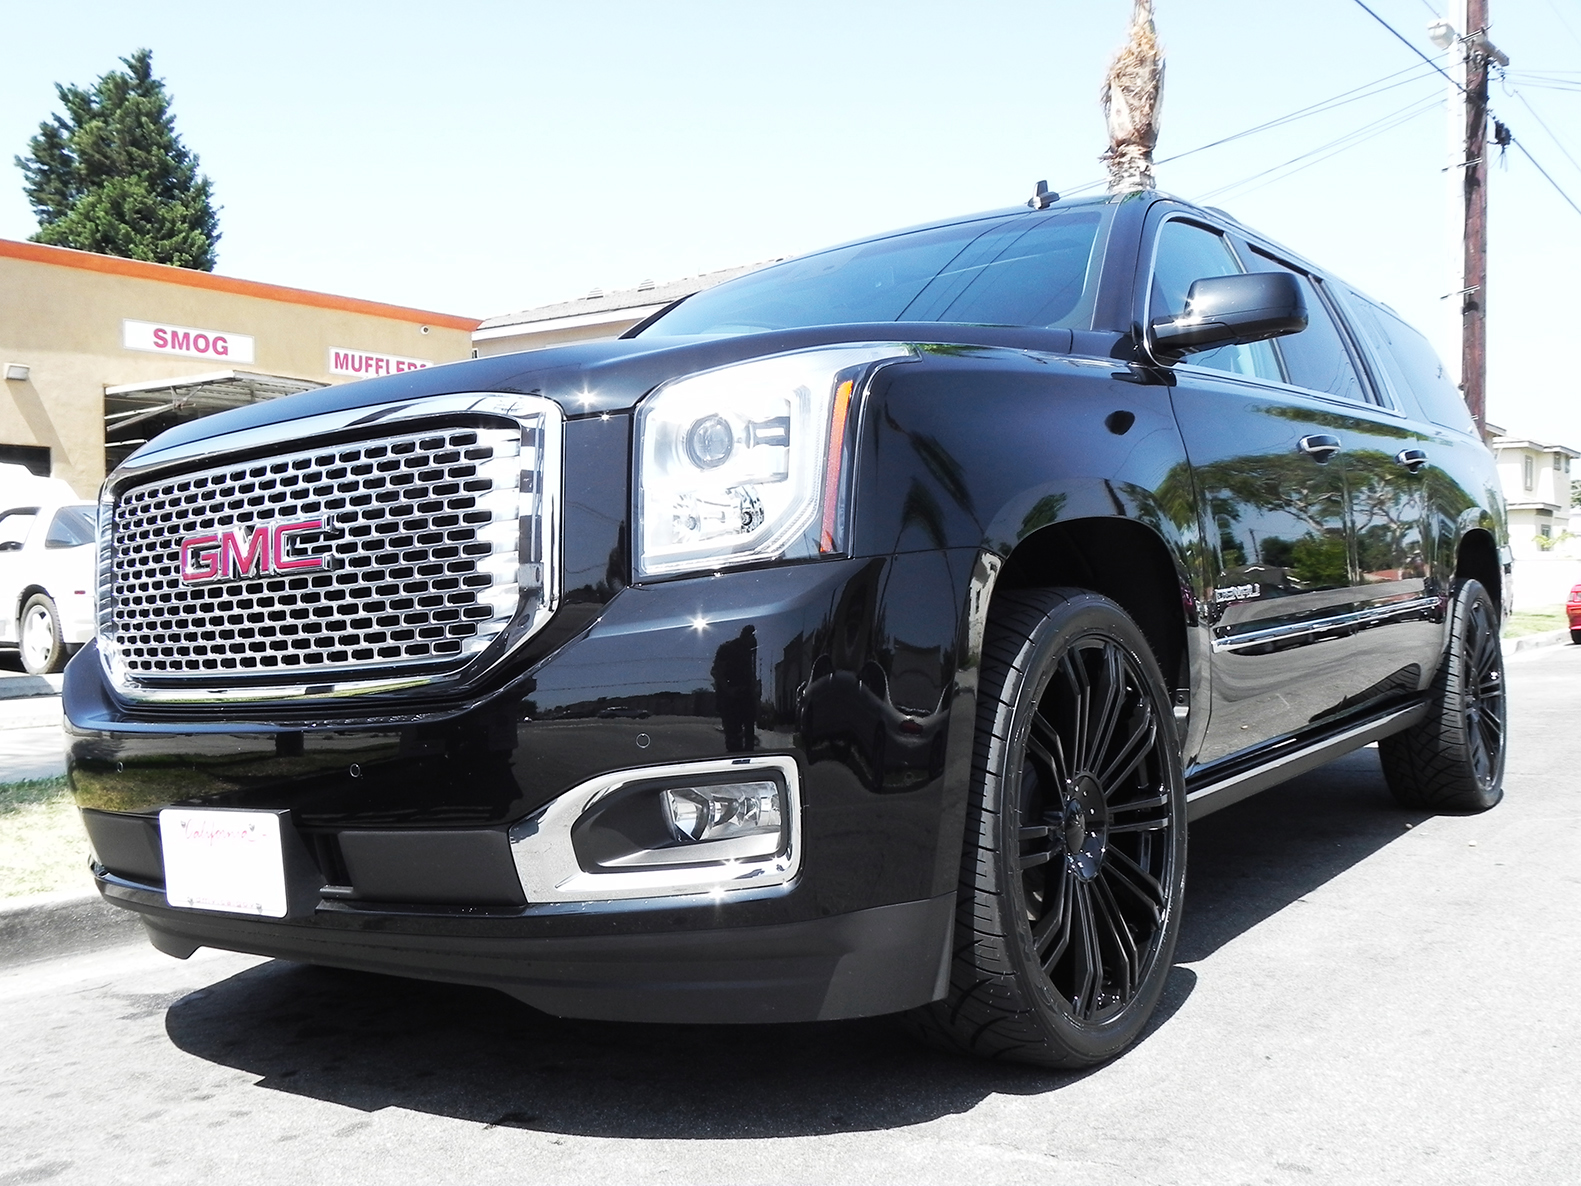 2019 GMC Yukon XL | Car Photos Catalog 2019